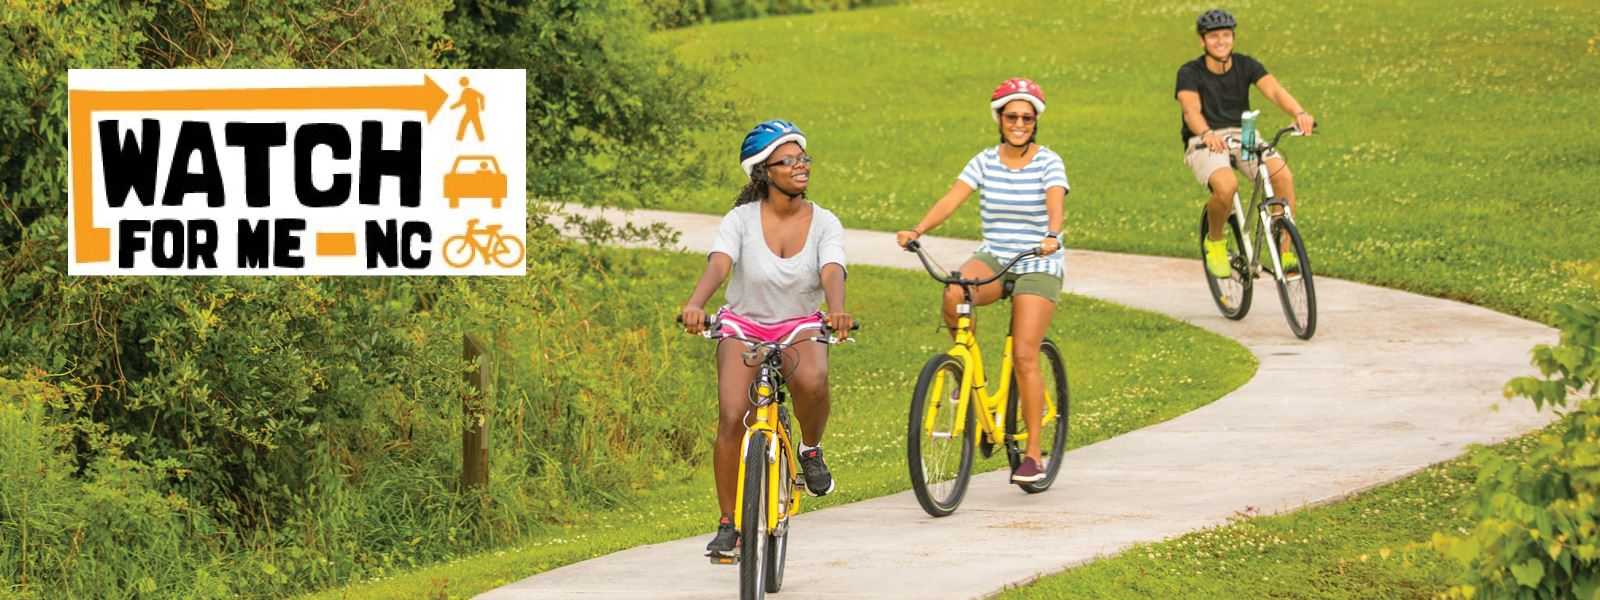 Jacksonville to Participate in Program to Help Improve Bicycle & Pedestrian Safety